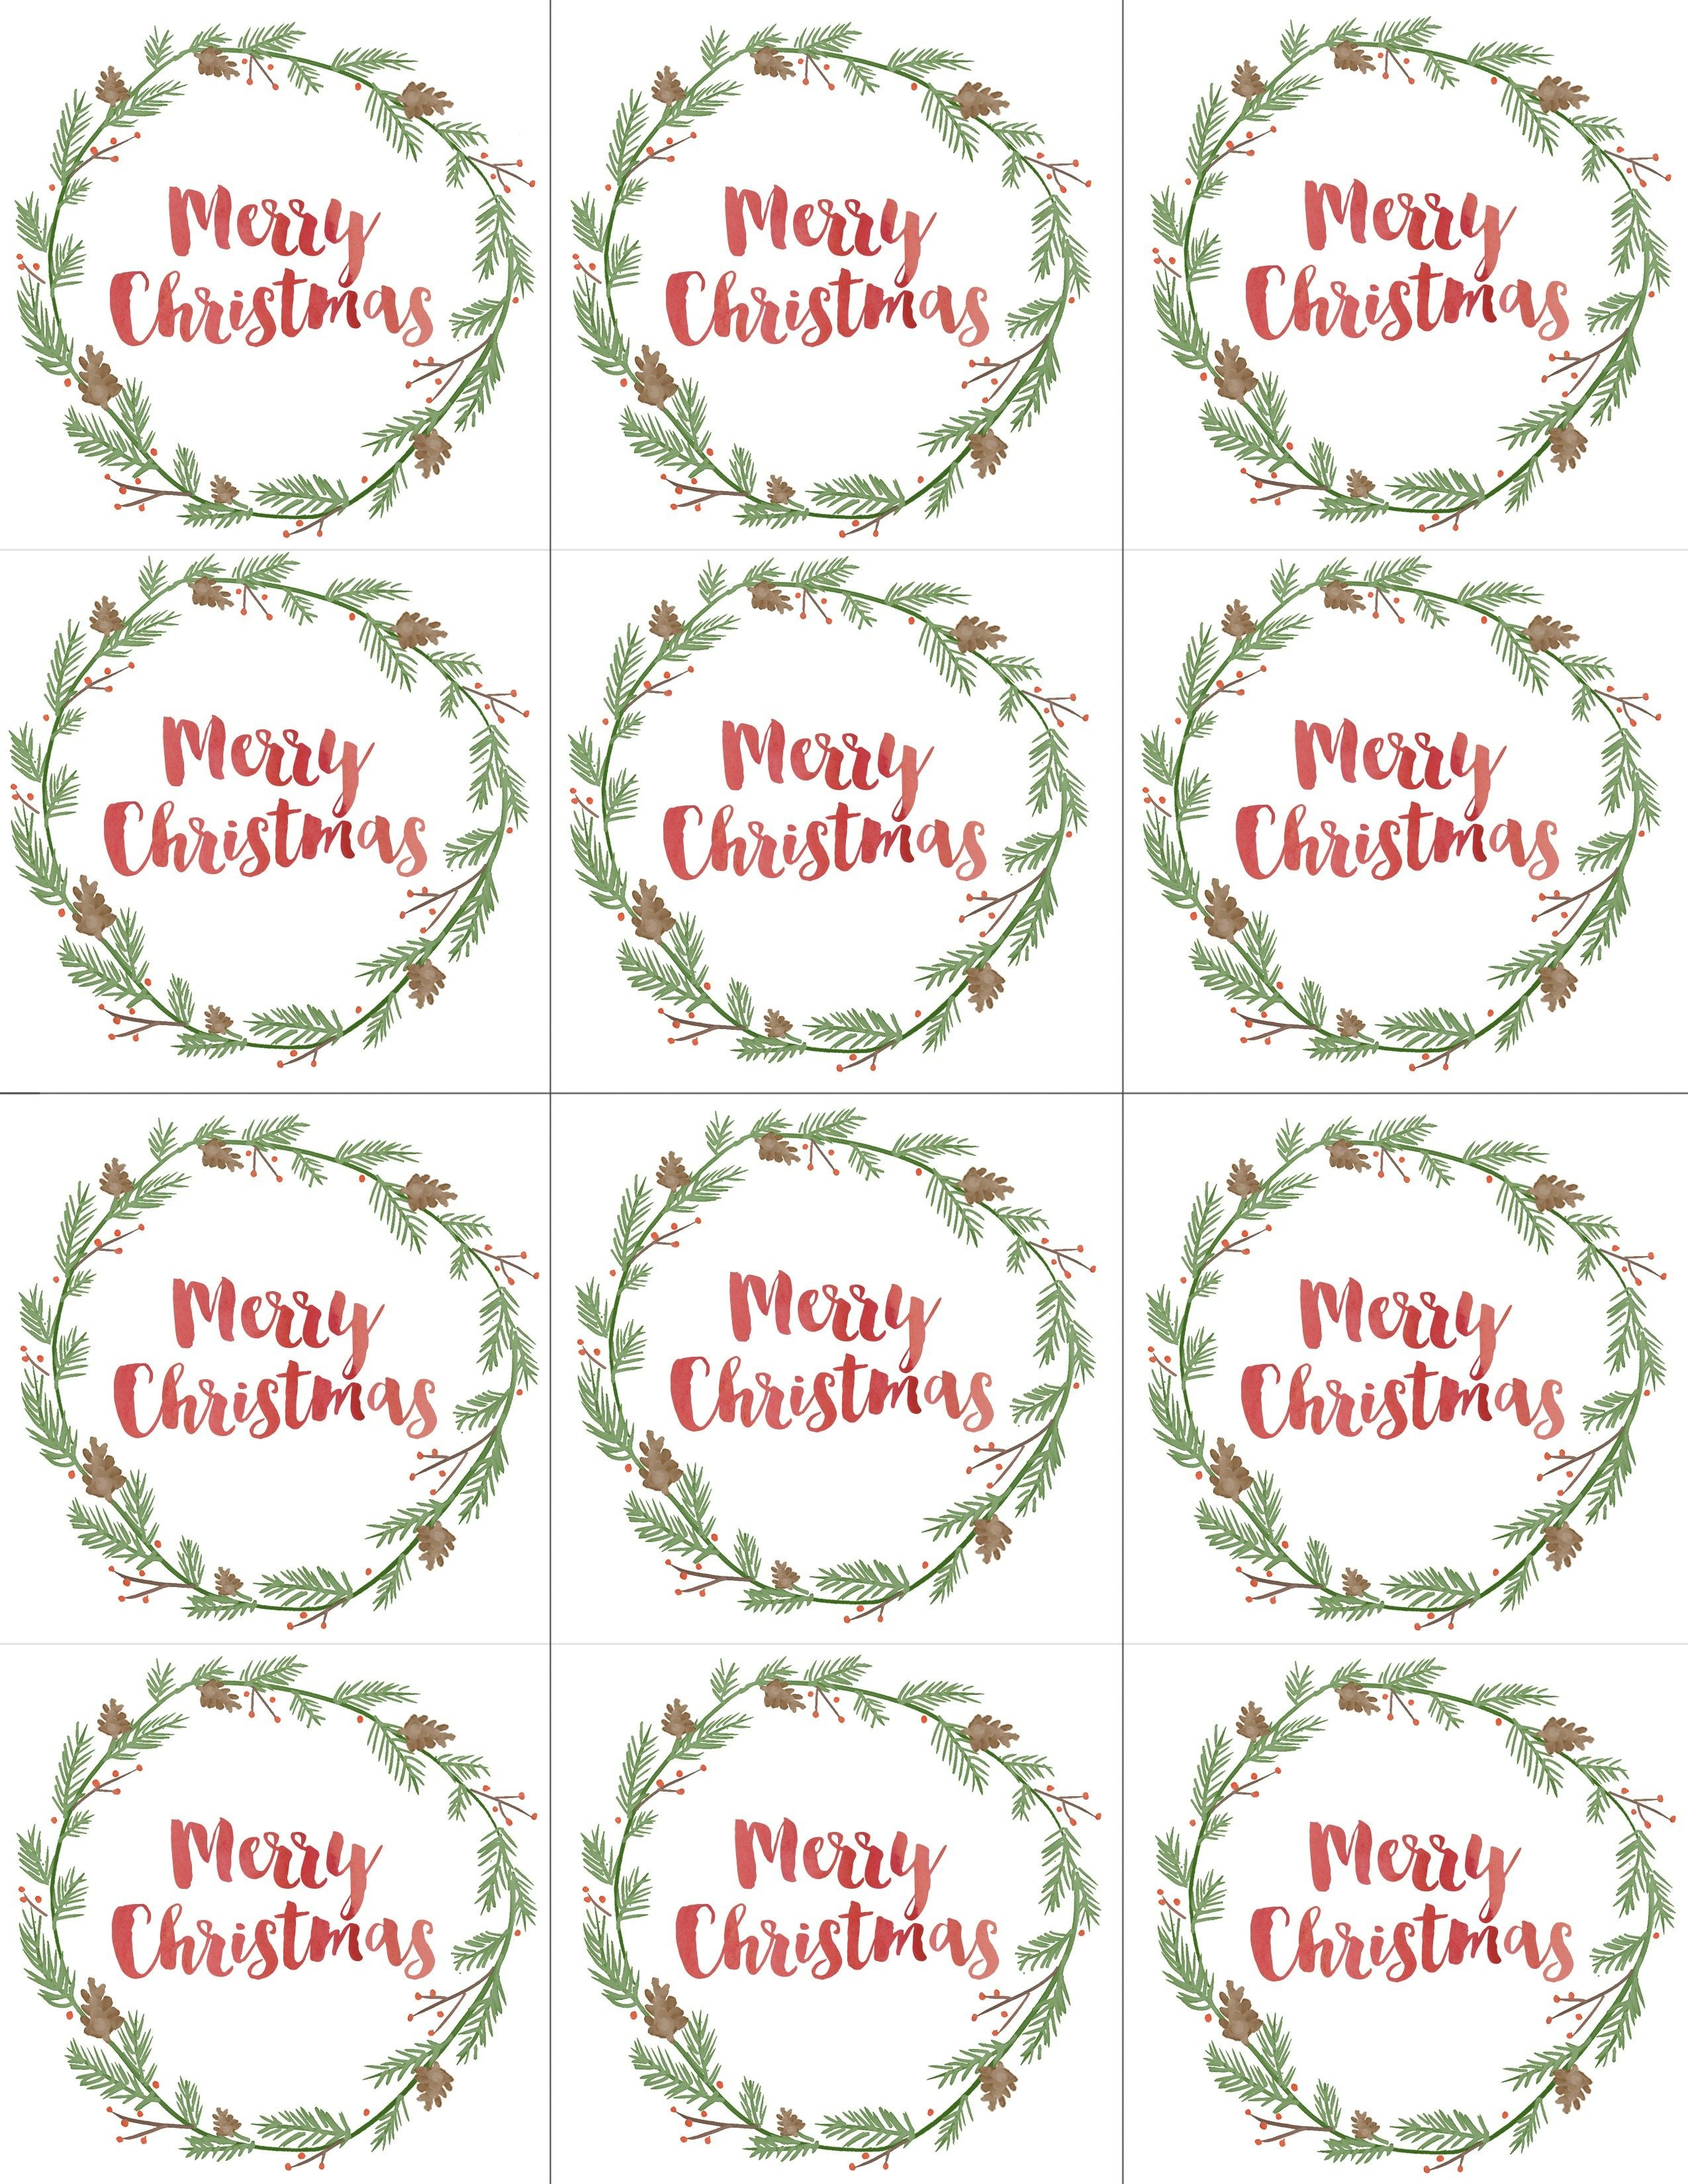 Hand Painted Gift Tags Free Printable | Christmas | Christmas Gift - Free Printable Christmas Gift Tags